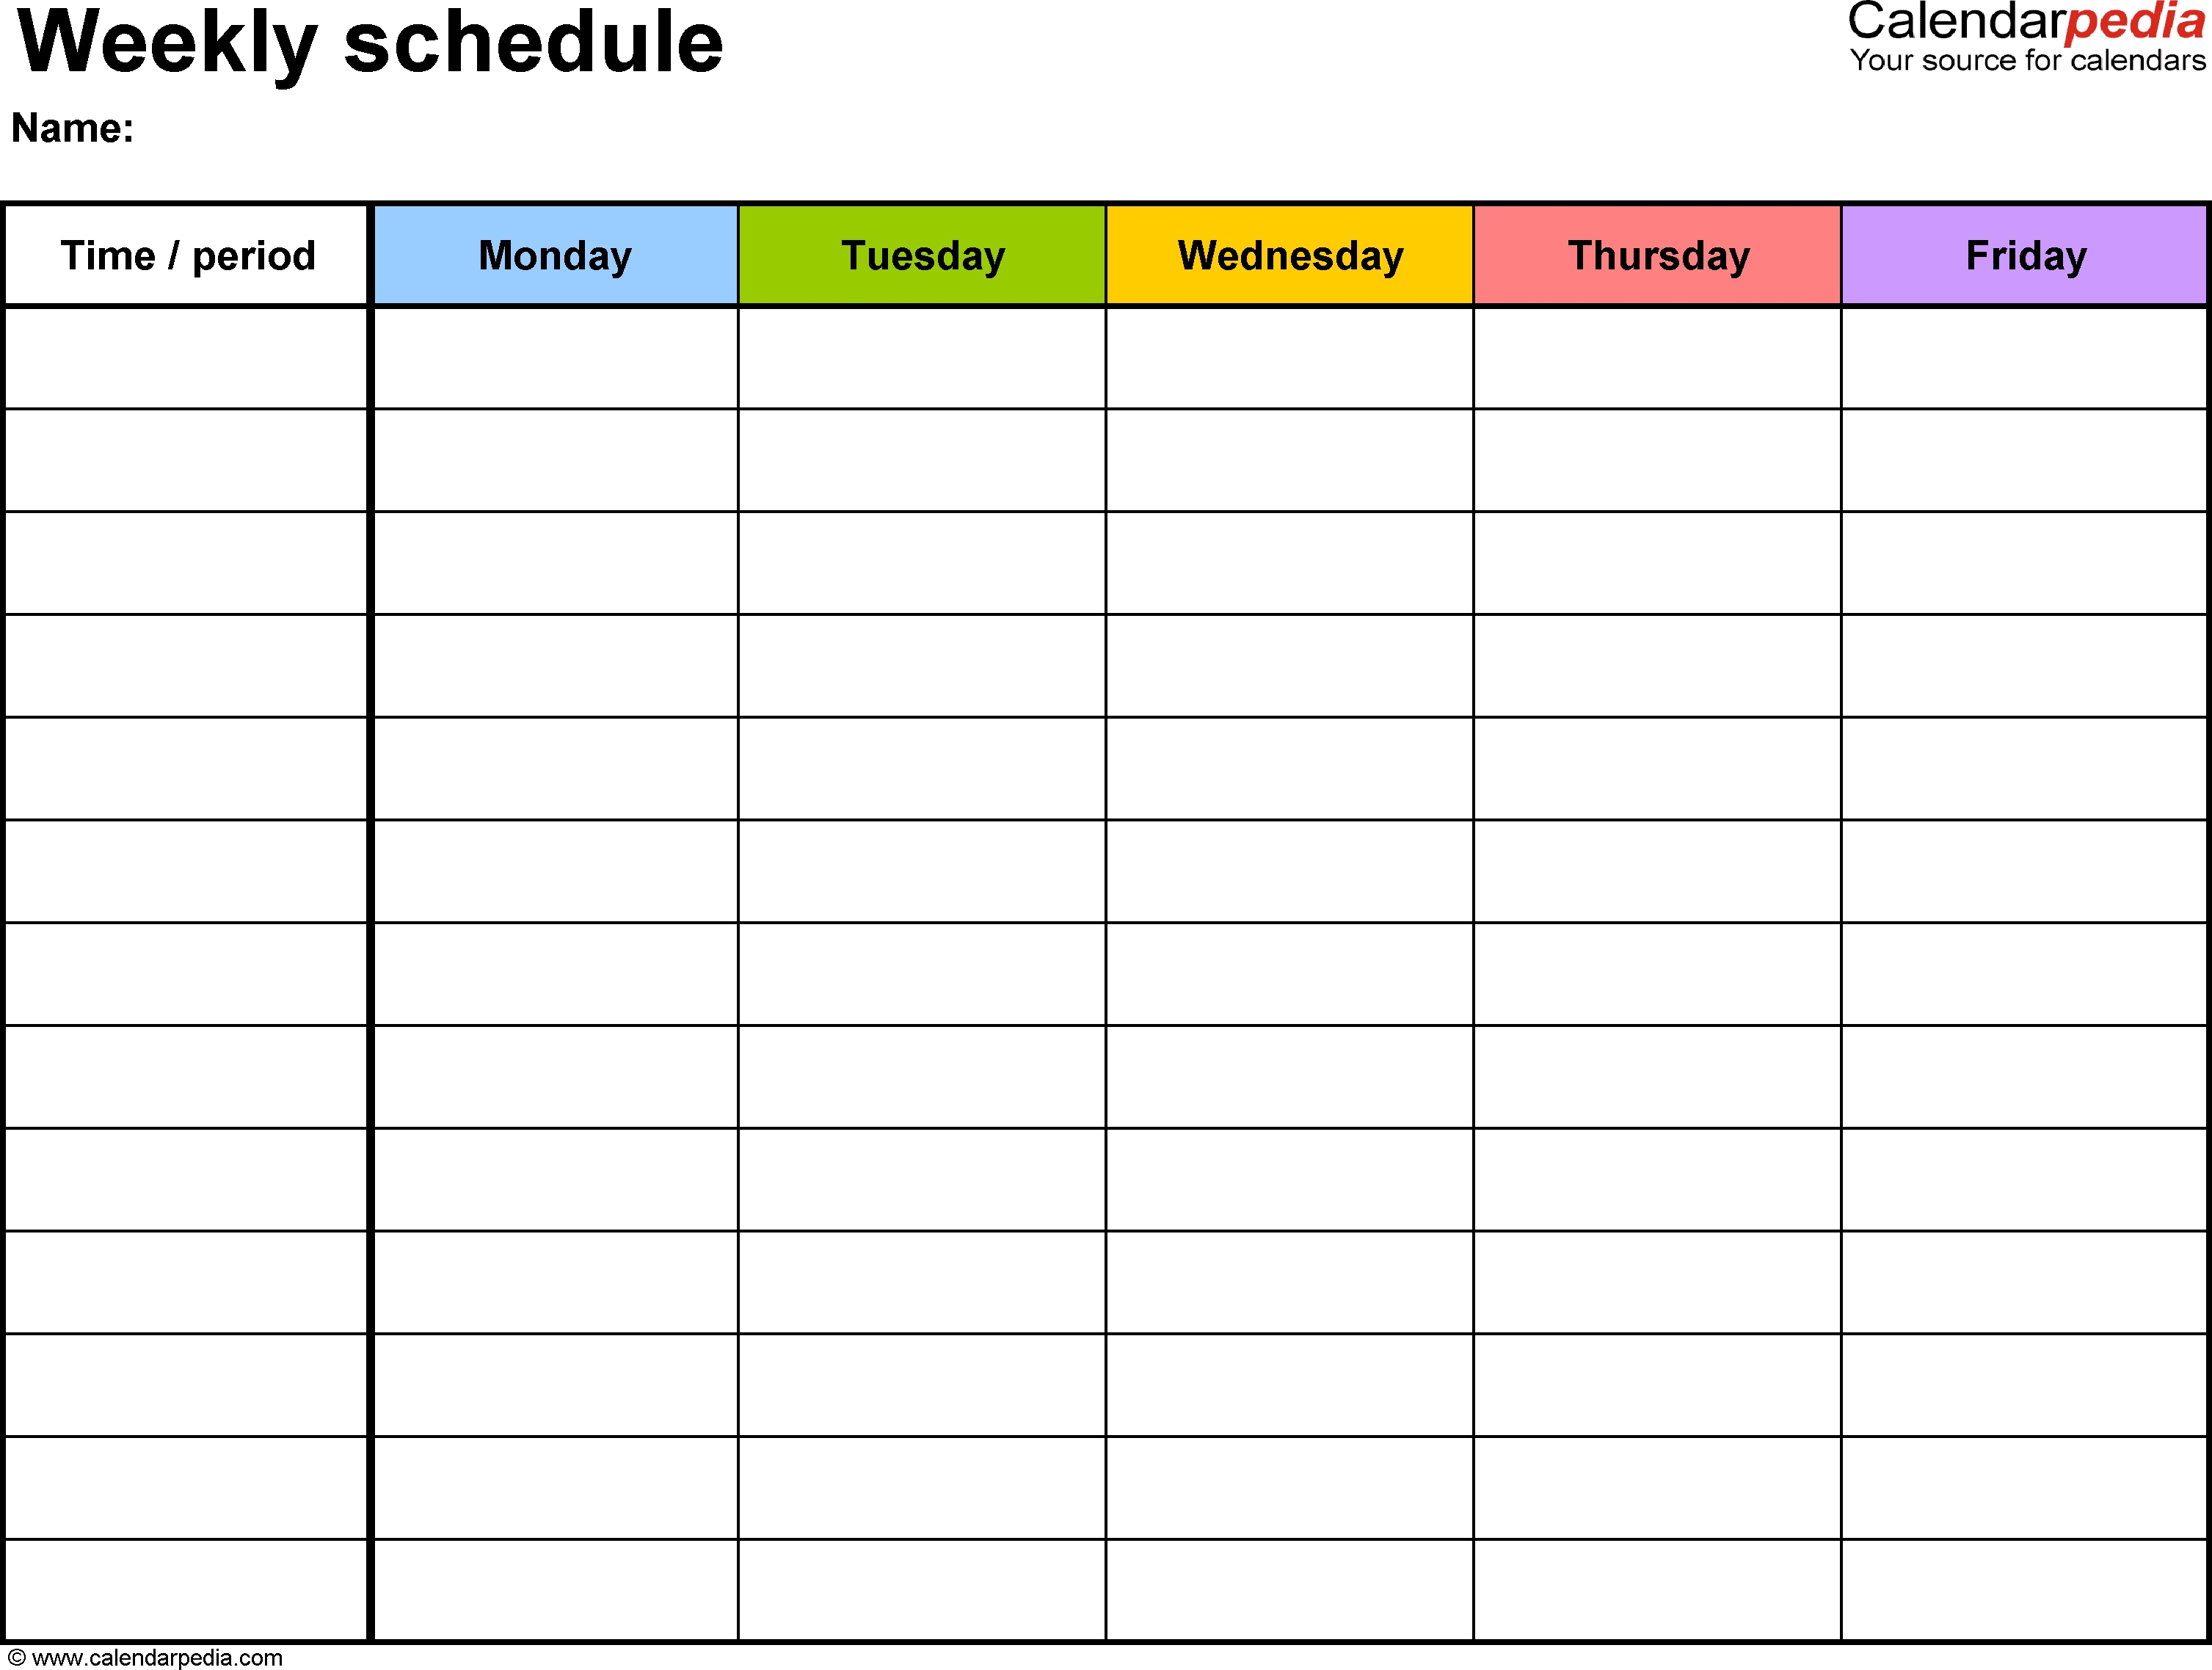 Free Weekly Schedule Templates For Excel - 18 Templates pertaining to 12 Hours In 12 Weeks Pdf Download